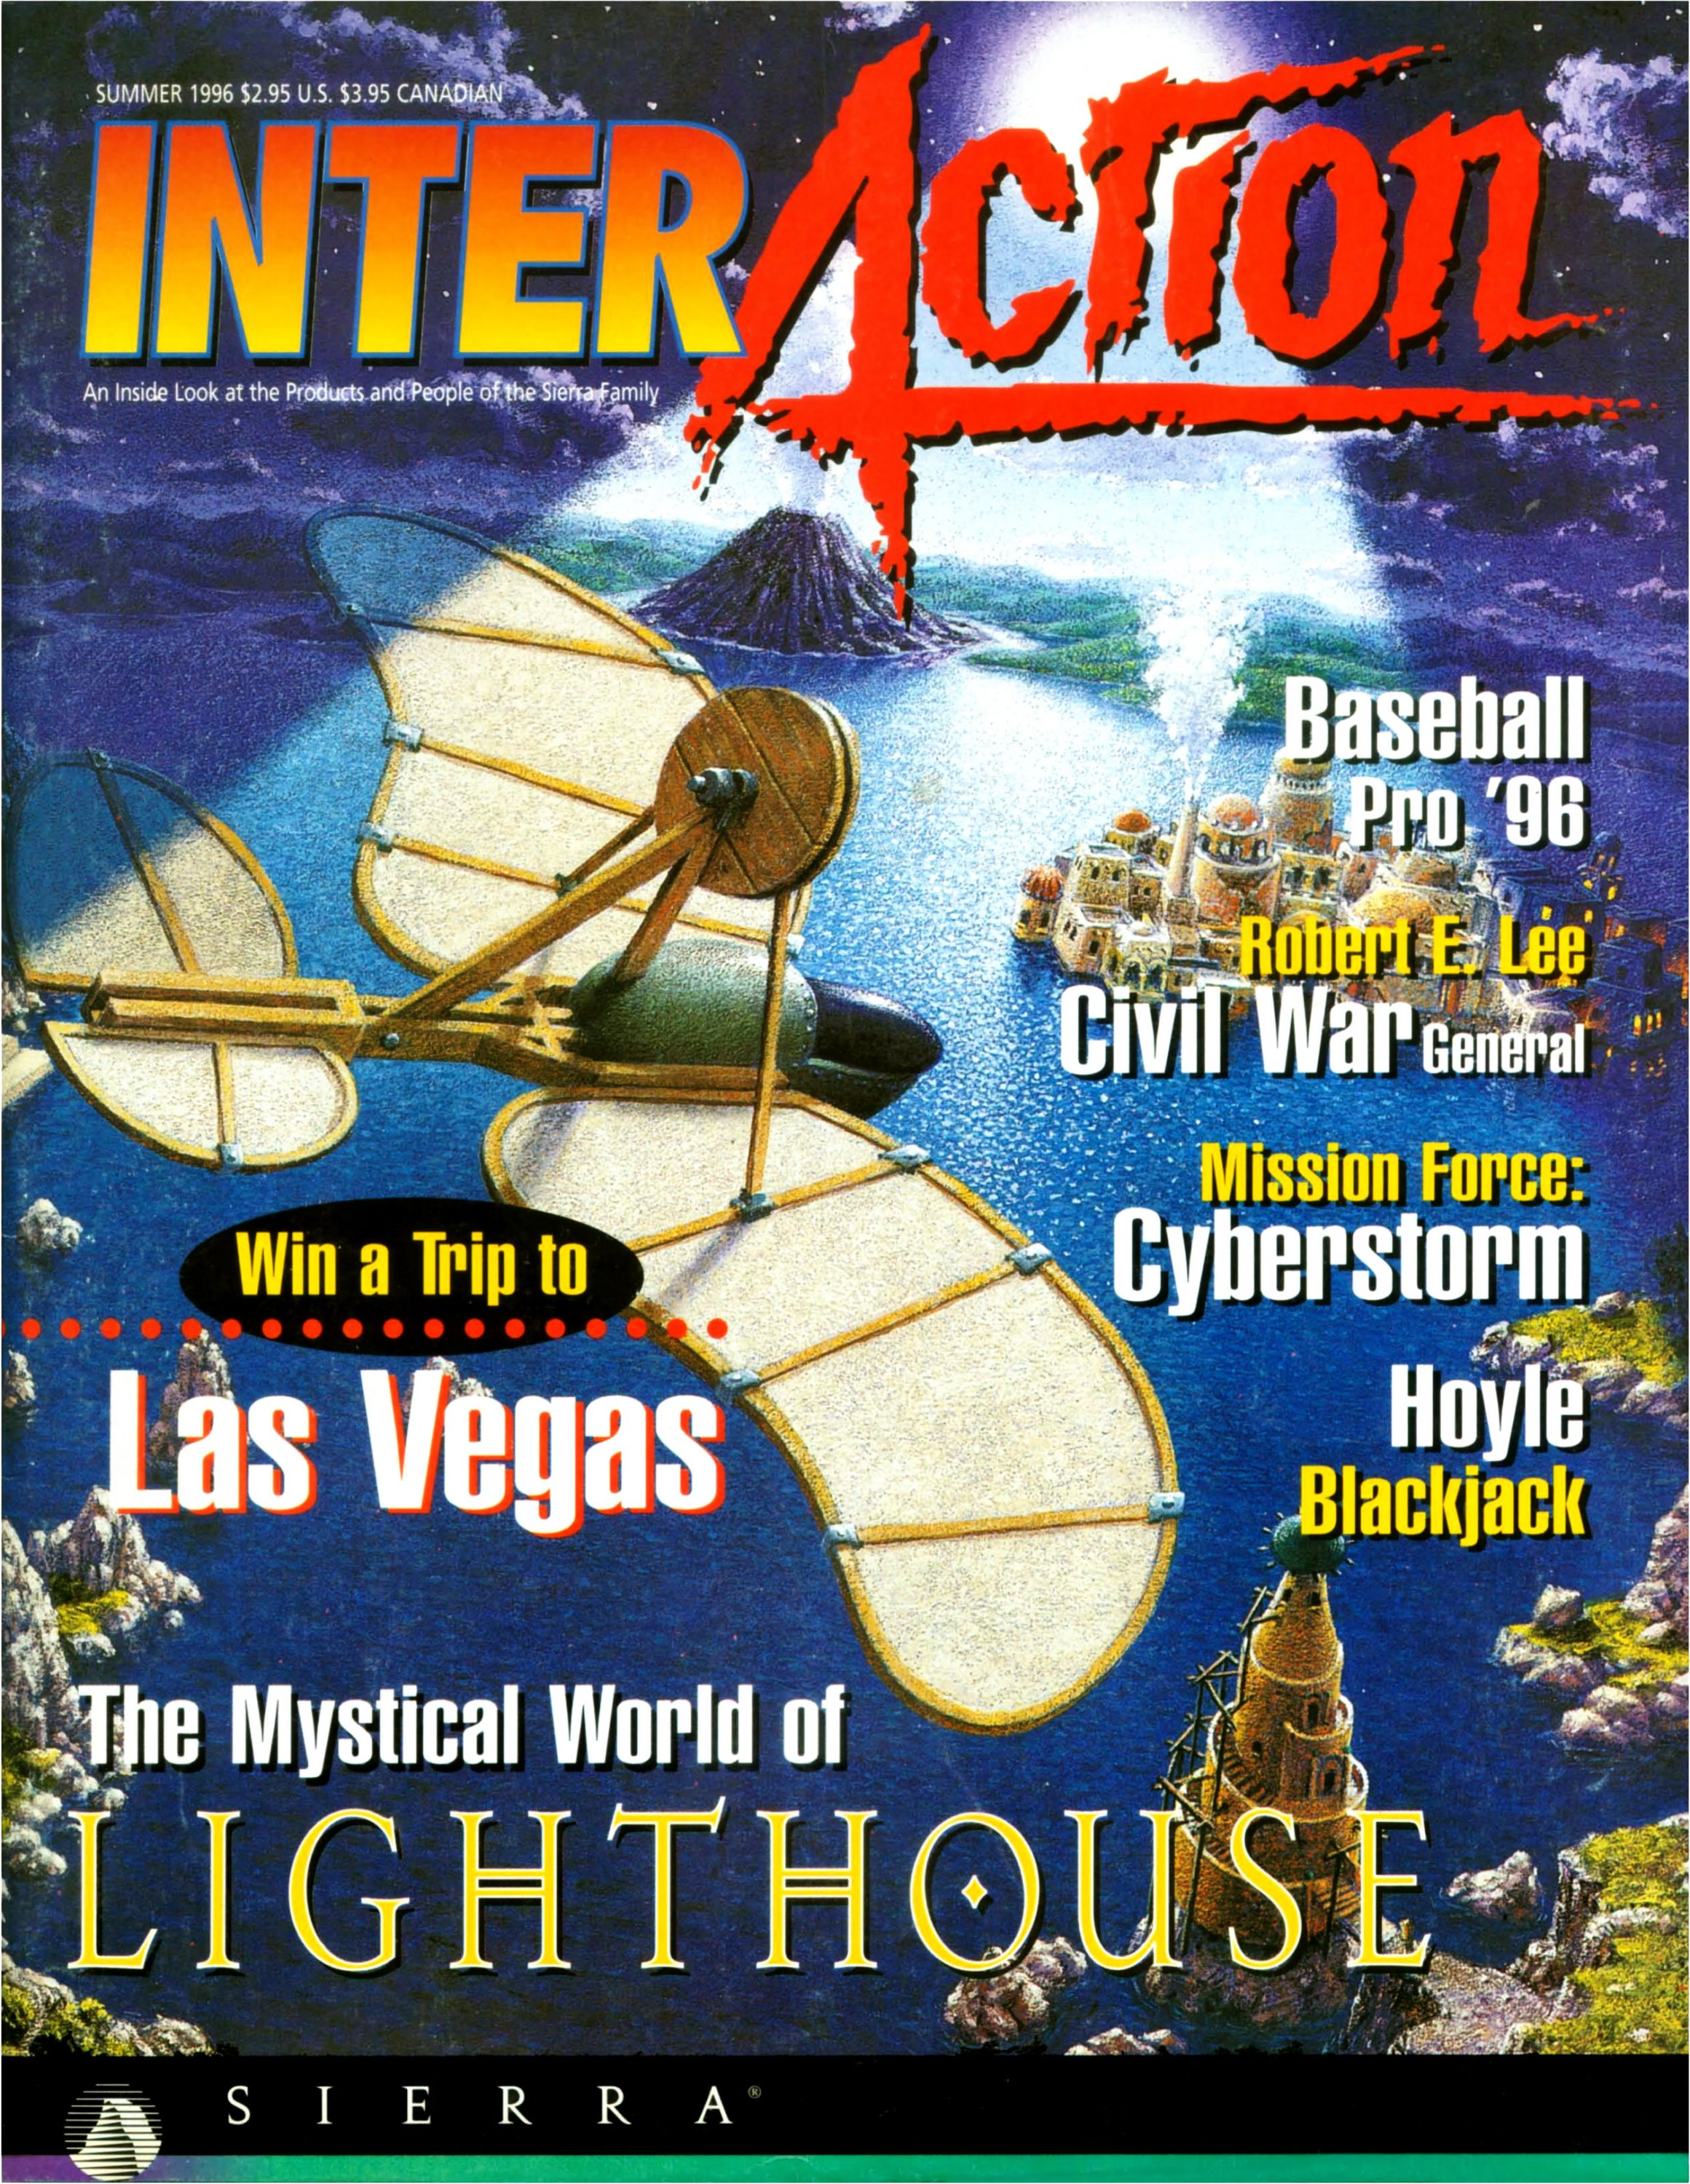 InterAction Issue 27 (Volume 9 Number 1) Summer 1996